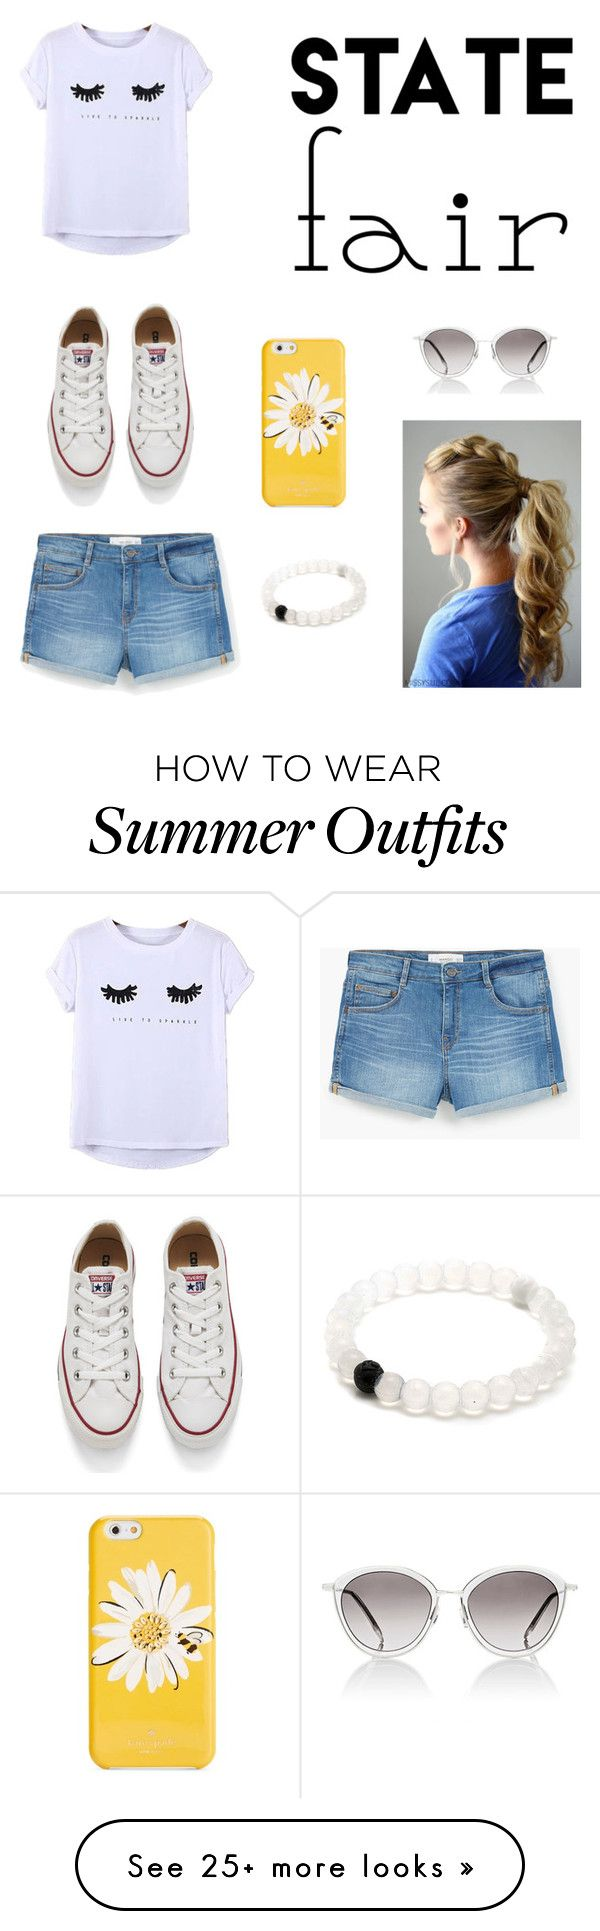 """preppy outfit for a date to the state fair"" by maddylafrenz on Polyvore featuring Chicnova Fashion, MANGO, Converse, Kate Spade, Oliver Peoples, statefair and summerdate"